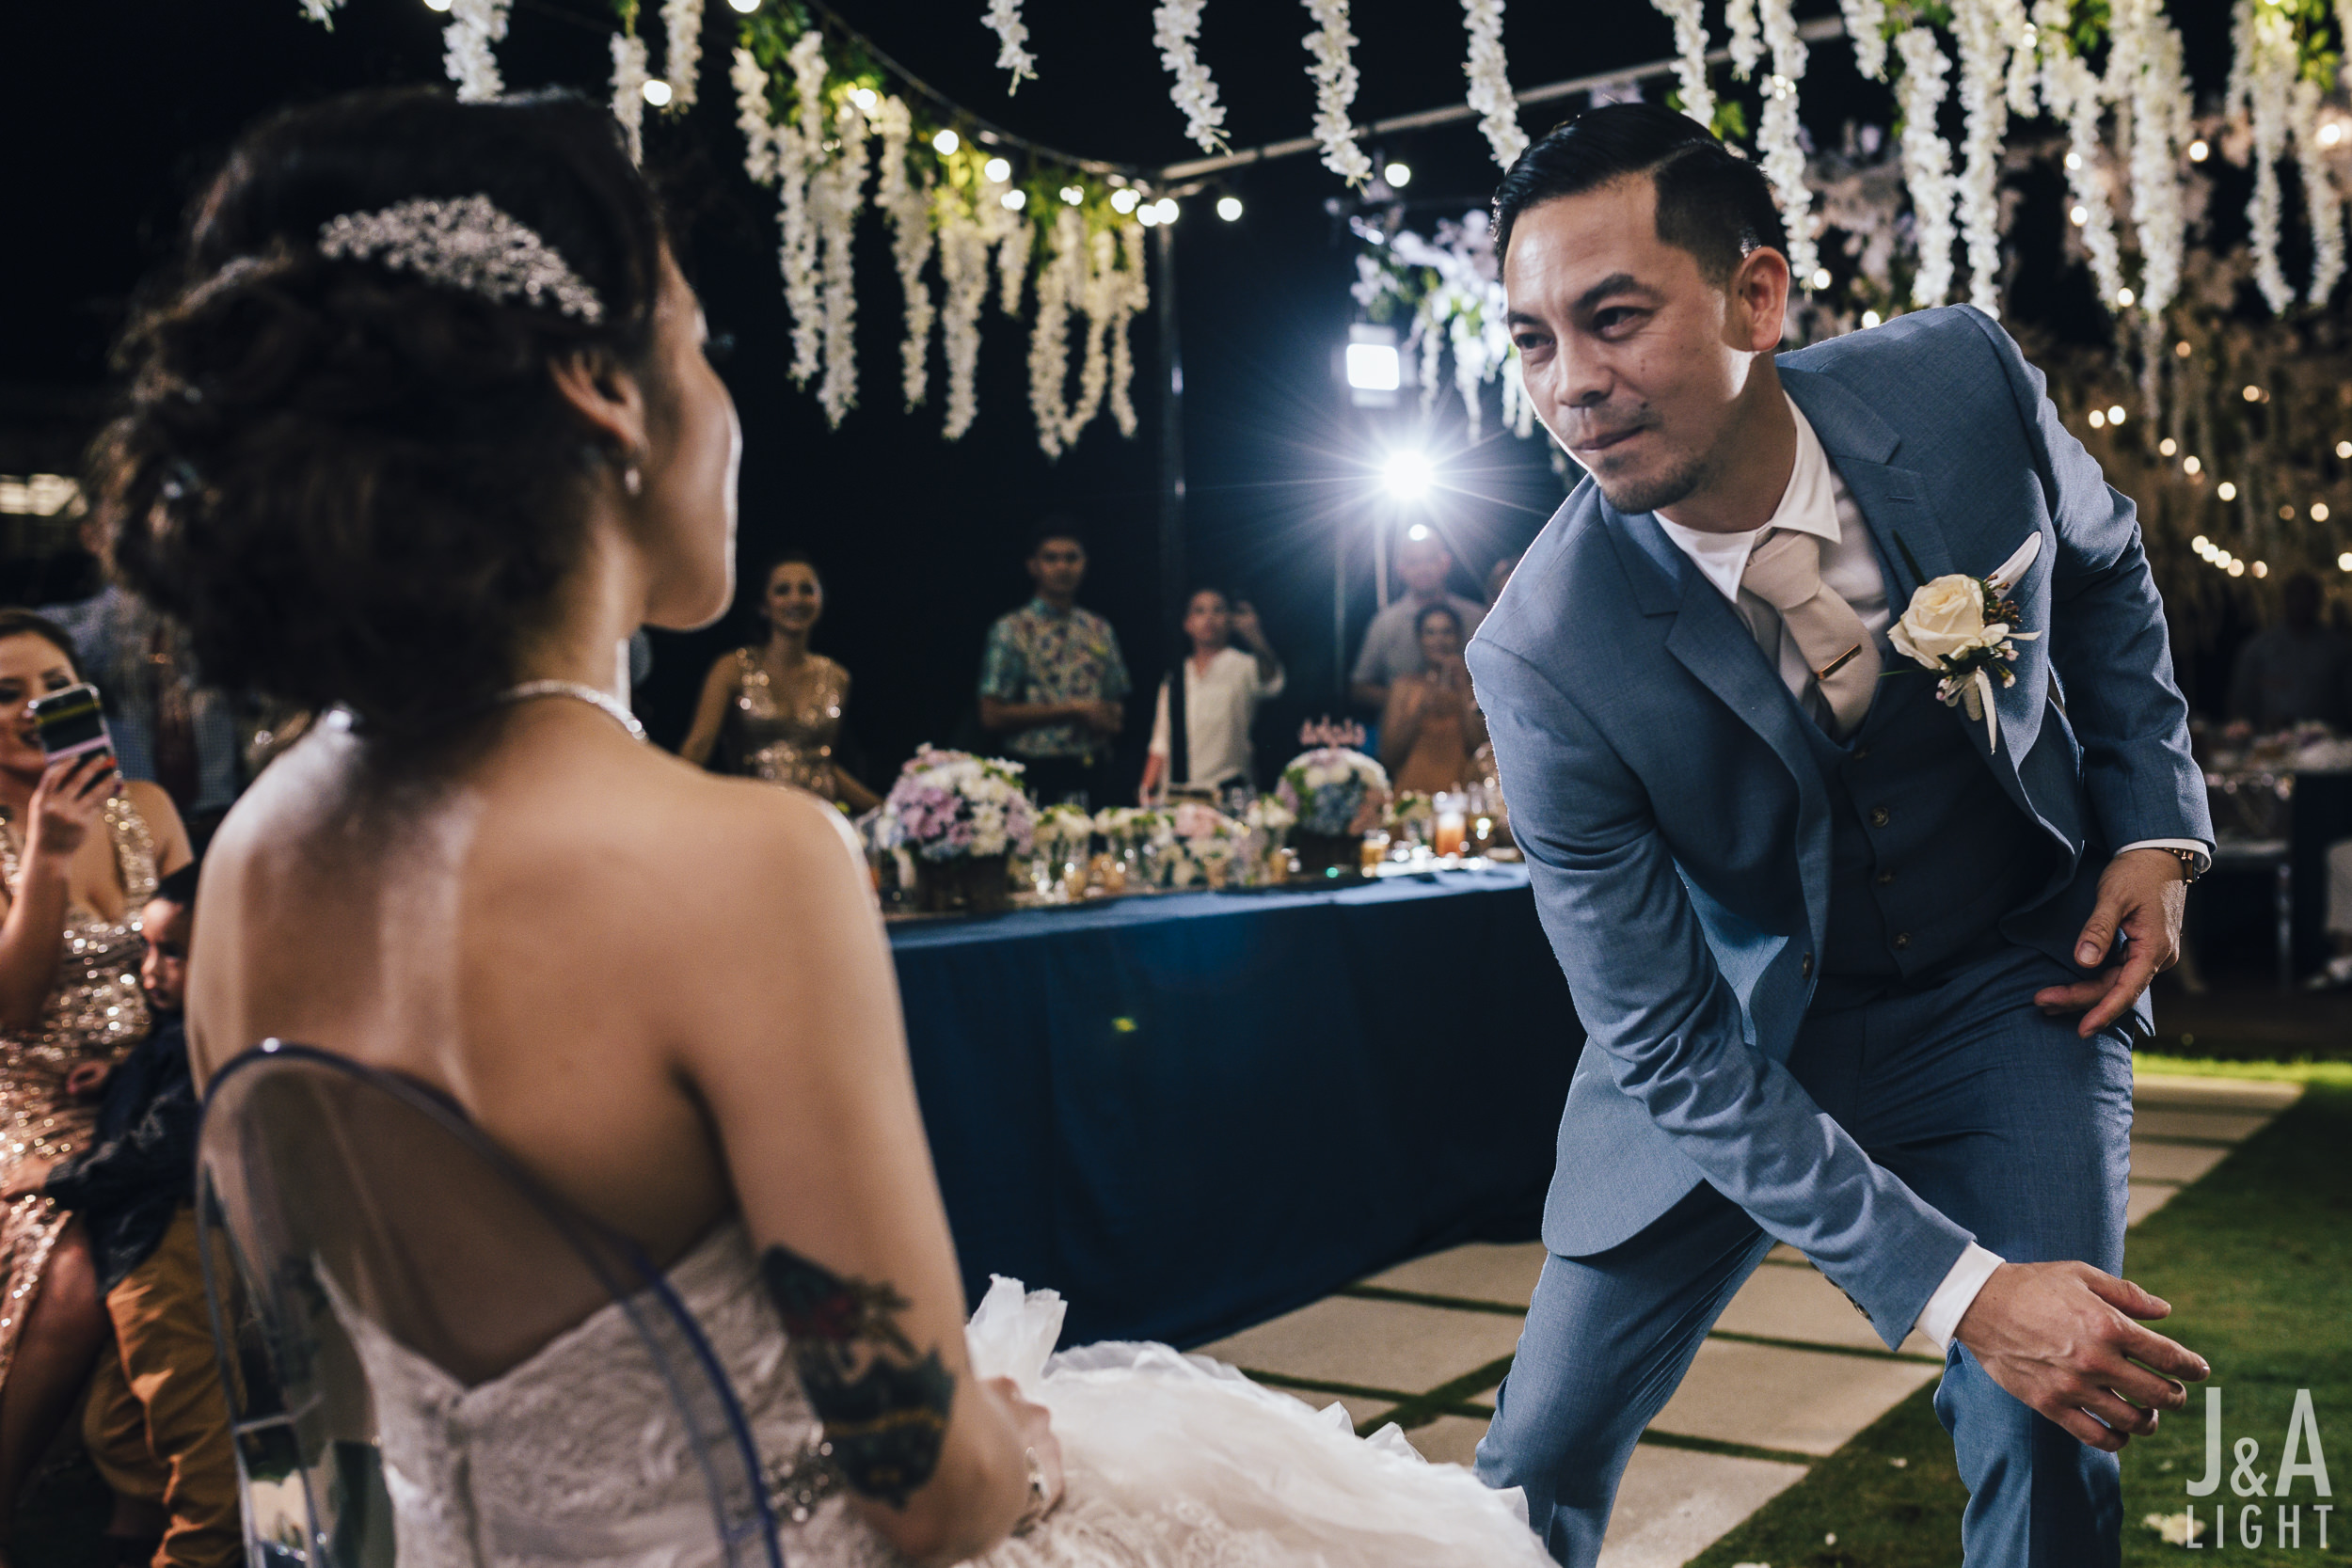 20170112-MarJow-TheLindBoracayPhillippinesInternationalWedding-117.jpg